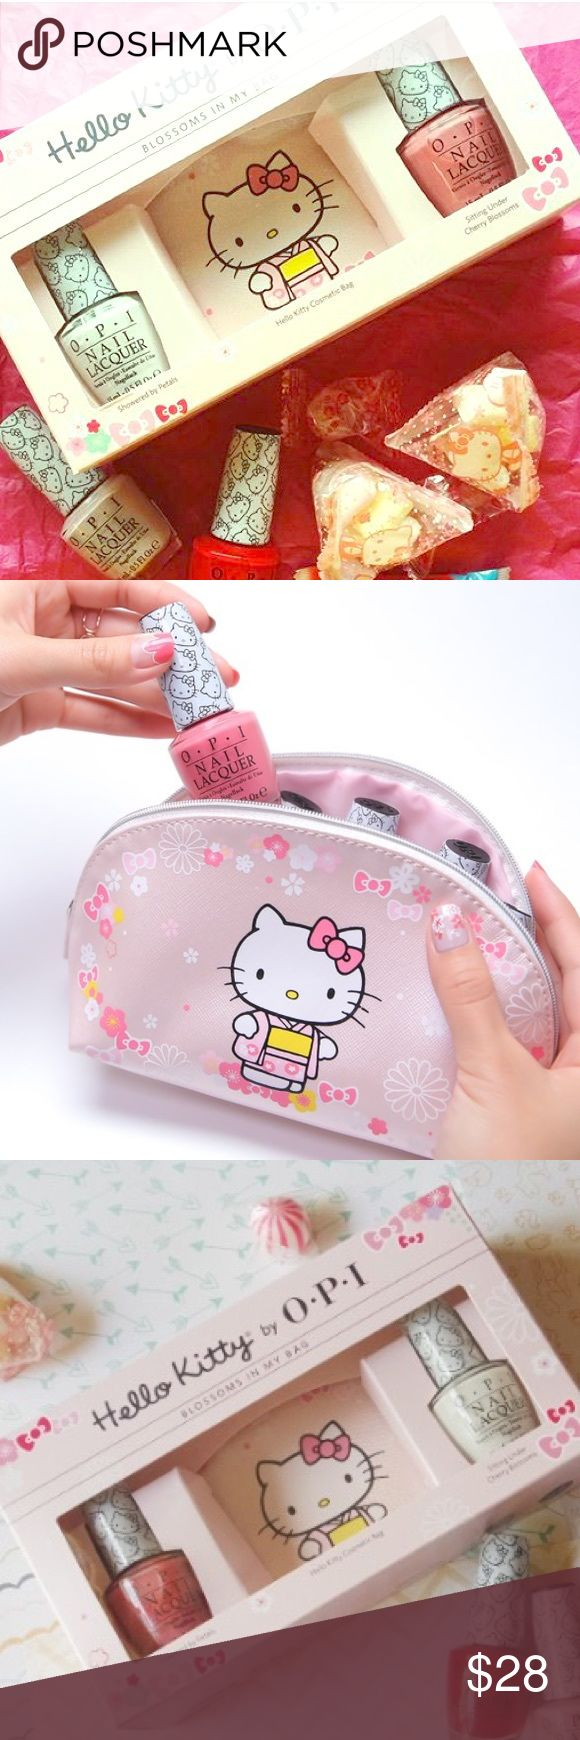 🍒OPI Hello Kitty cherry blossom nail gift set This Hello Kitty for OPI gift set is so cute!!! Includes 2 polishes and cosmetic bag with cherry blossom design. Must have for any Hello Kitty fan! Polishes are versatile white and light pink. New in box. *NOTE: these are stock photos. My box is a little damaged. Not horrible (product is all ok!!), but just enough that it isn't pristine for gift giving. But who would want to give this adorbs kit away anyways?! 🚫trades. Will add photos of actual…